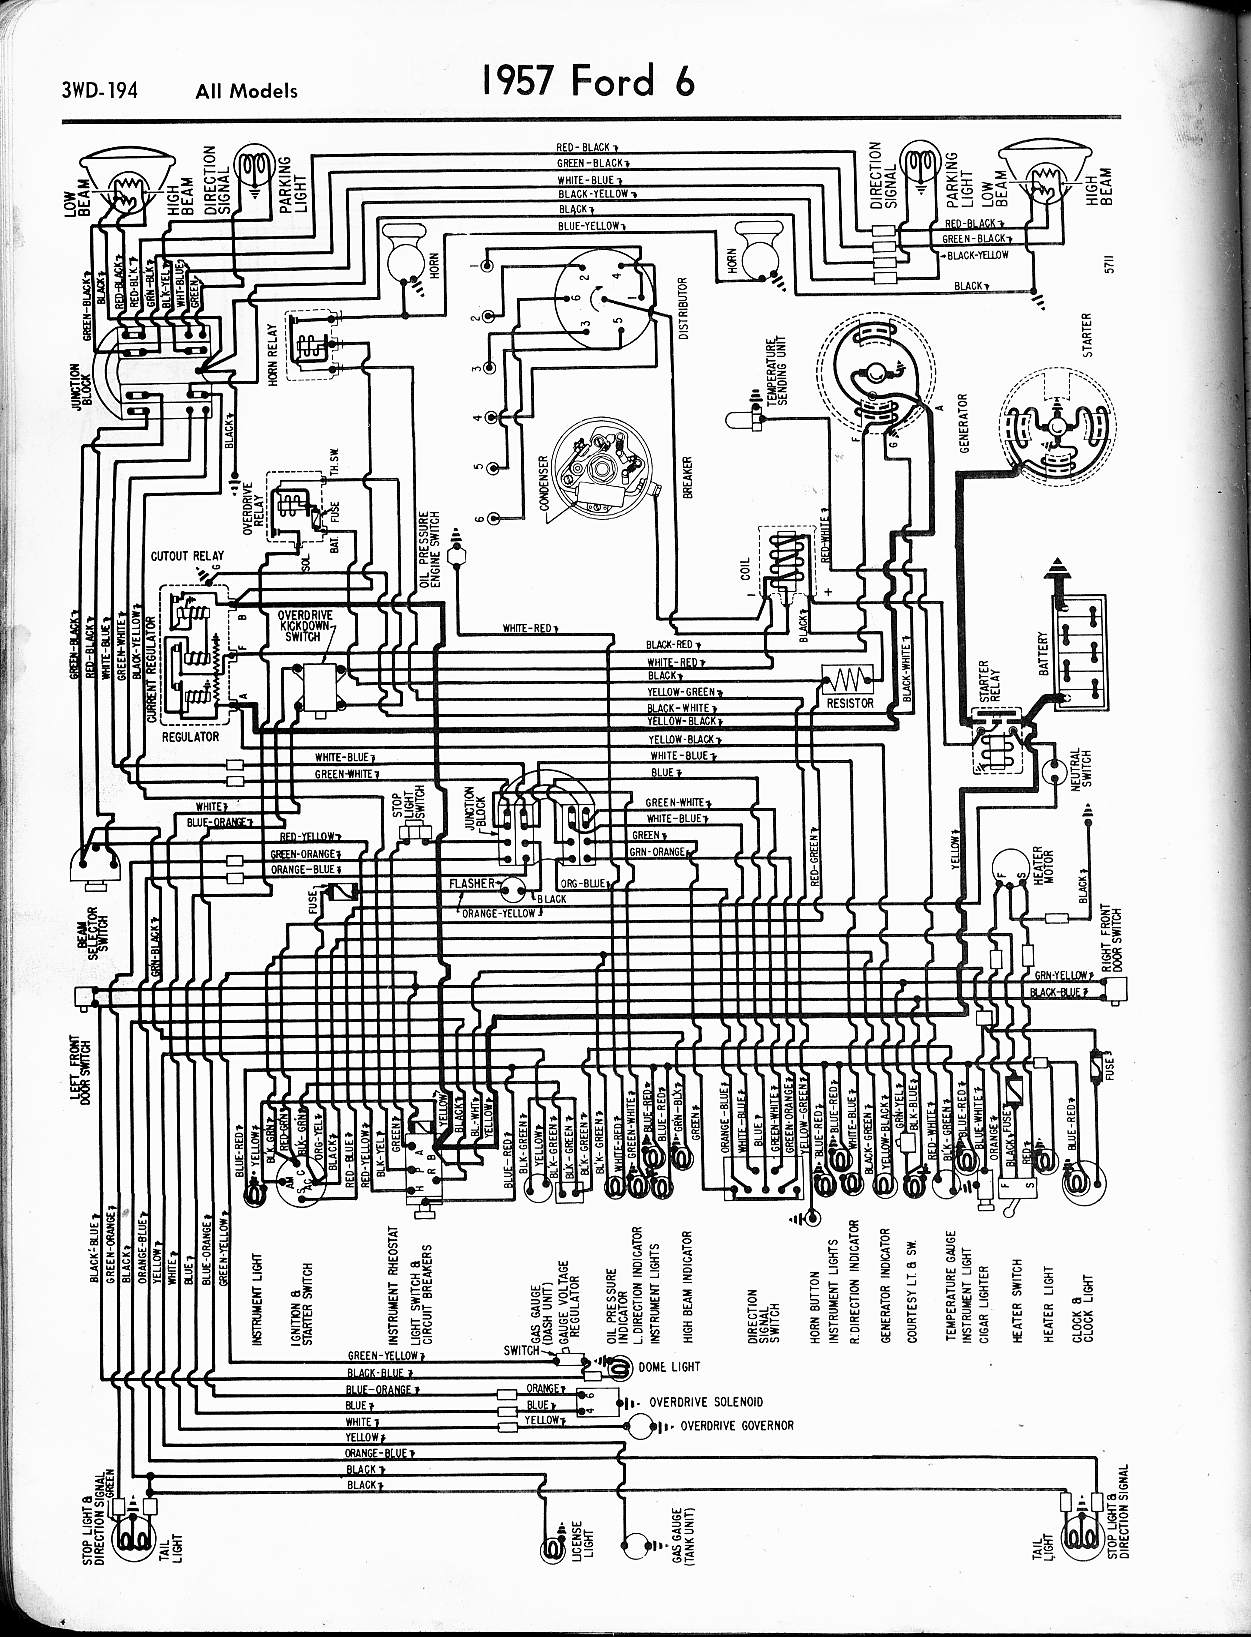 Ford F150 4 2l Engine Diagram Wiring Library 57 65 Diagrams Tractor